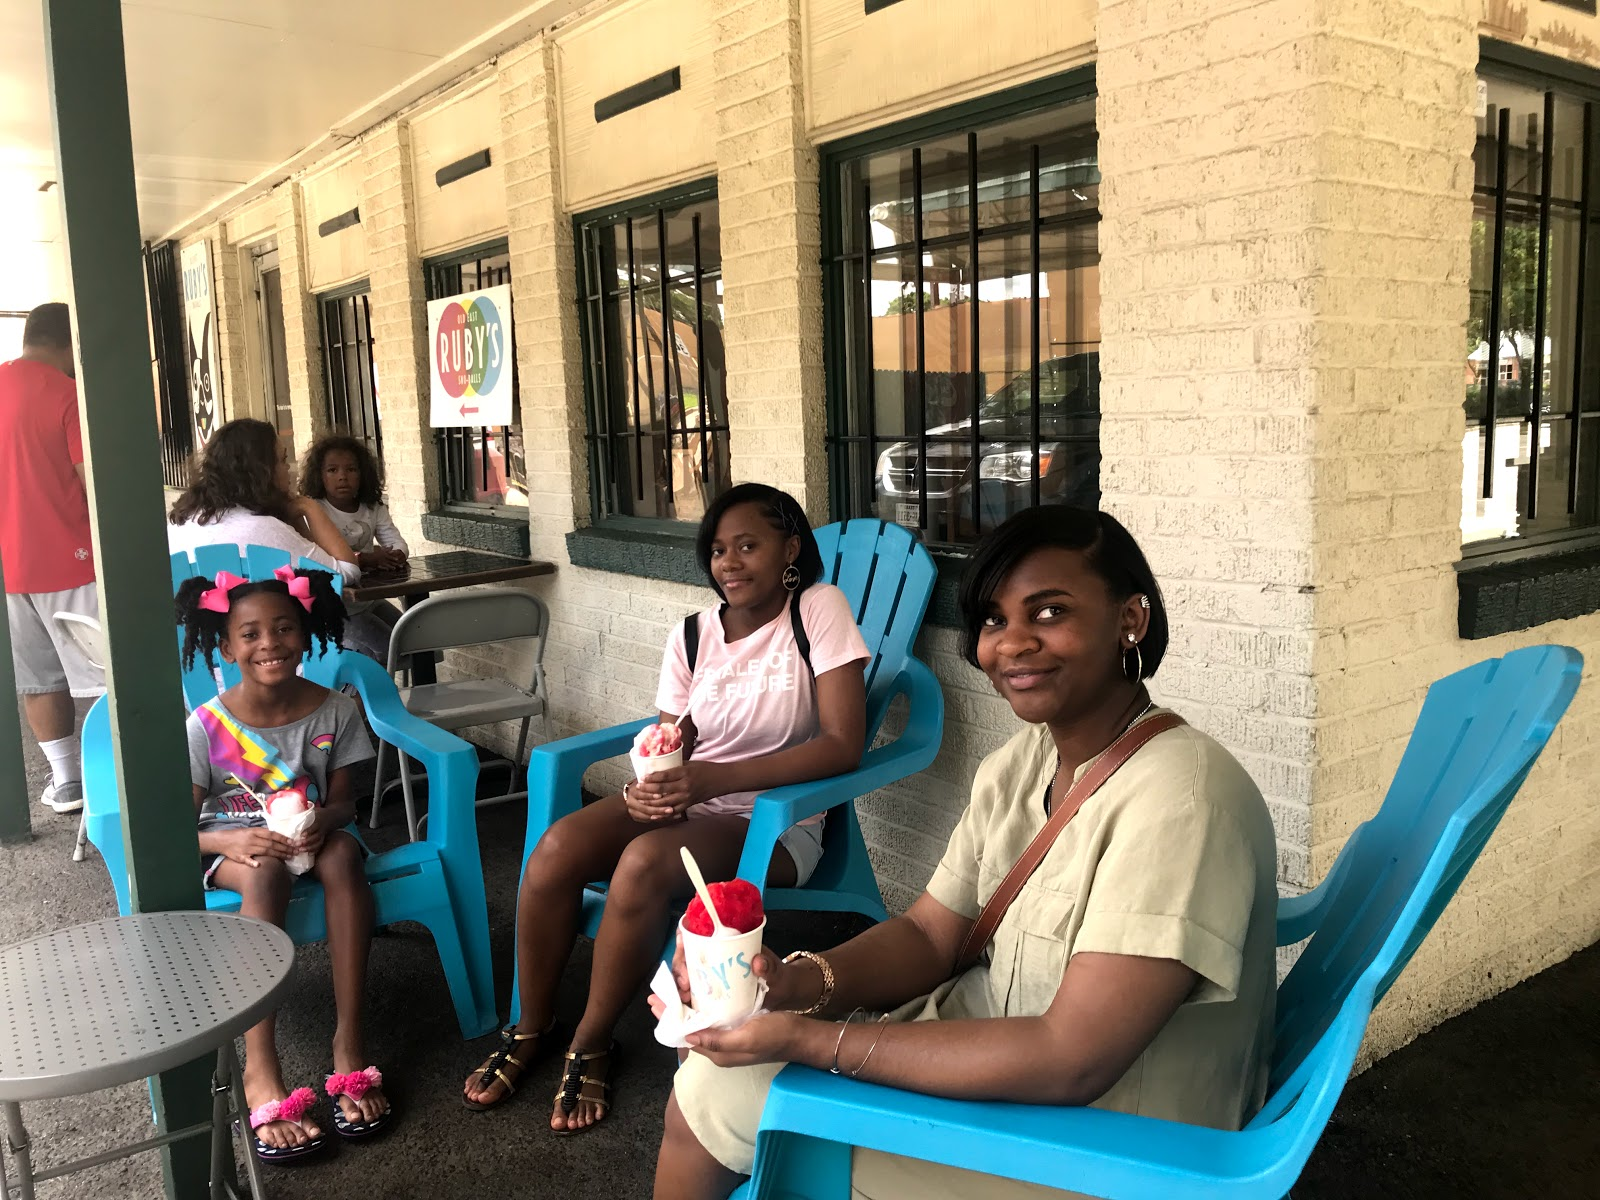 Image: Family enjoying snow cones at Ruby's in Dallas Texas